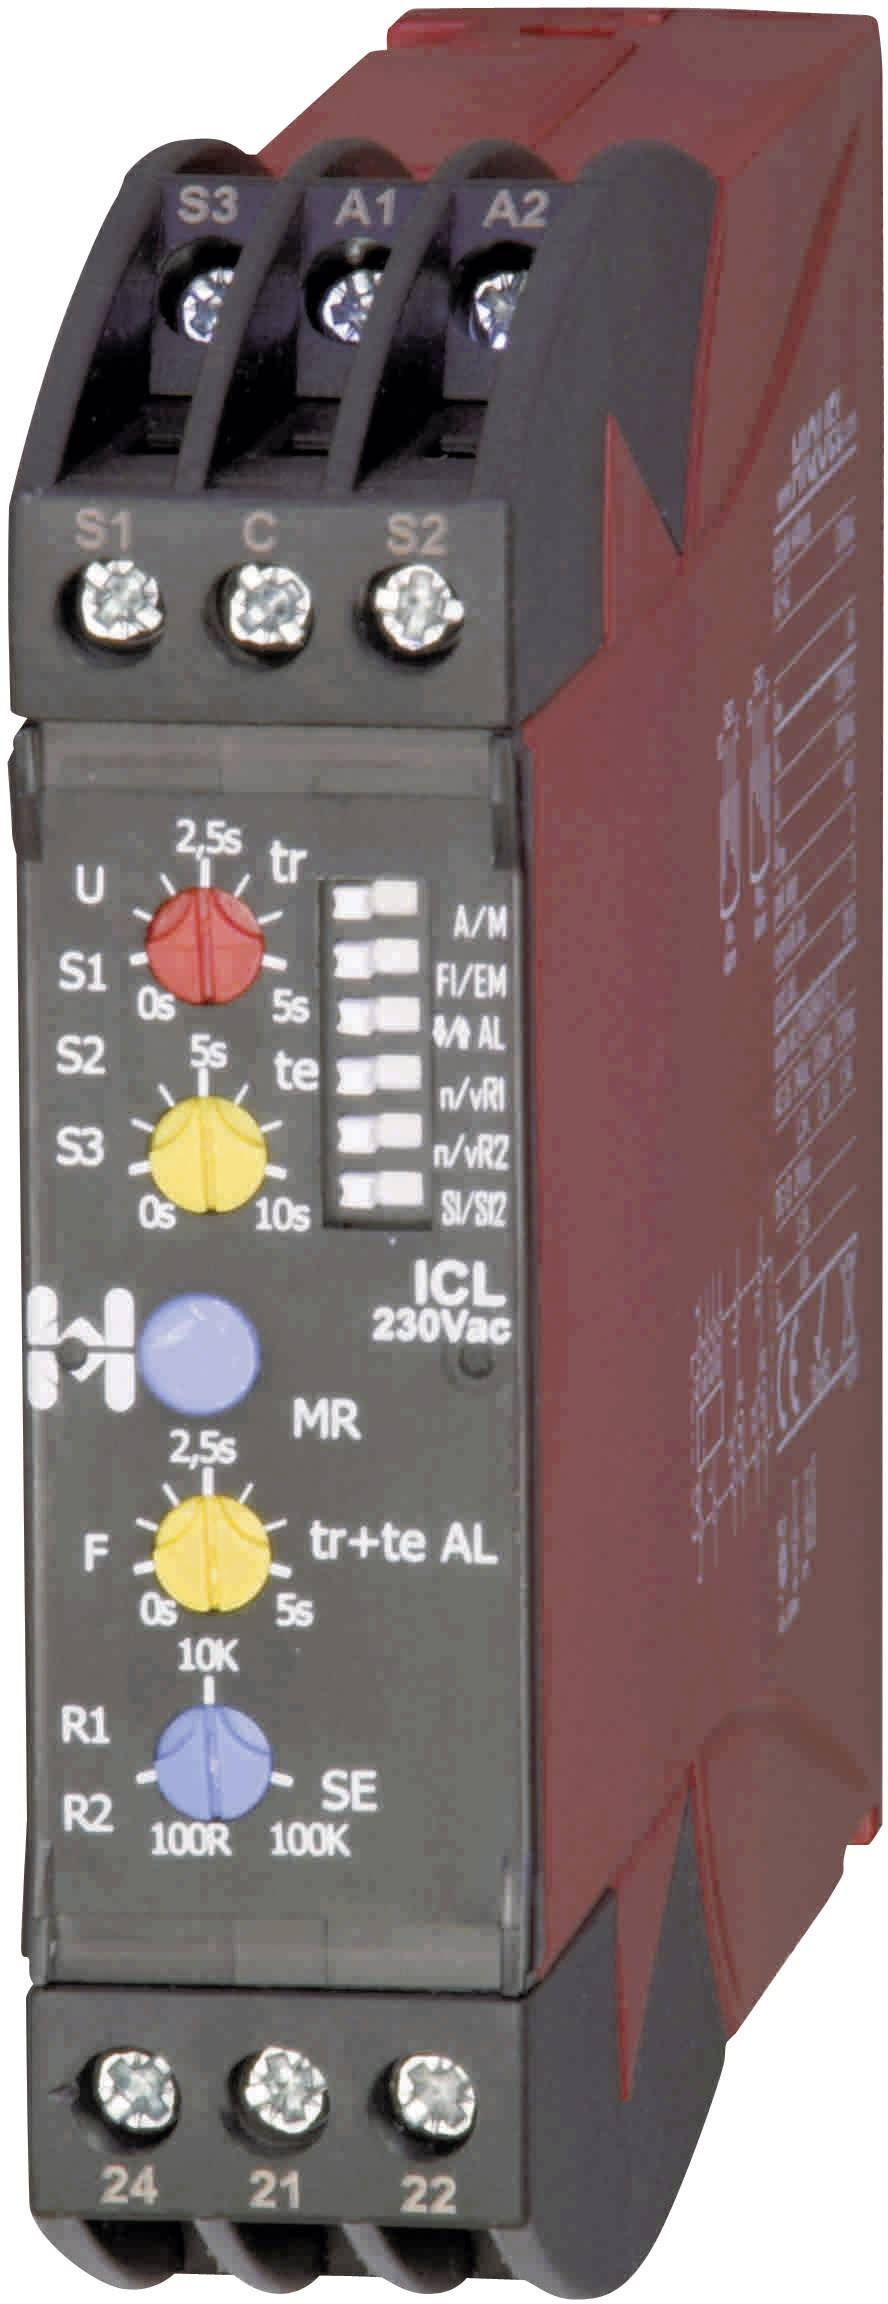 Monitorovací relé in-case Hiquel, ICL 230Vac, in-case